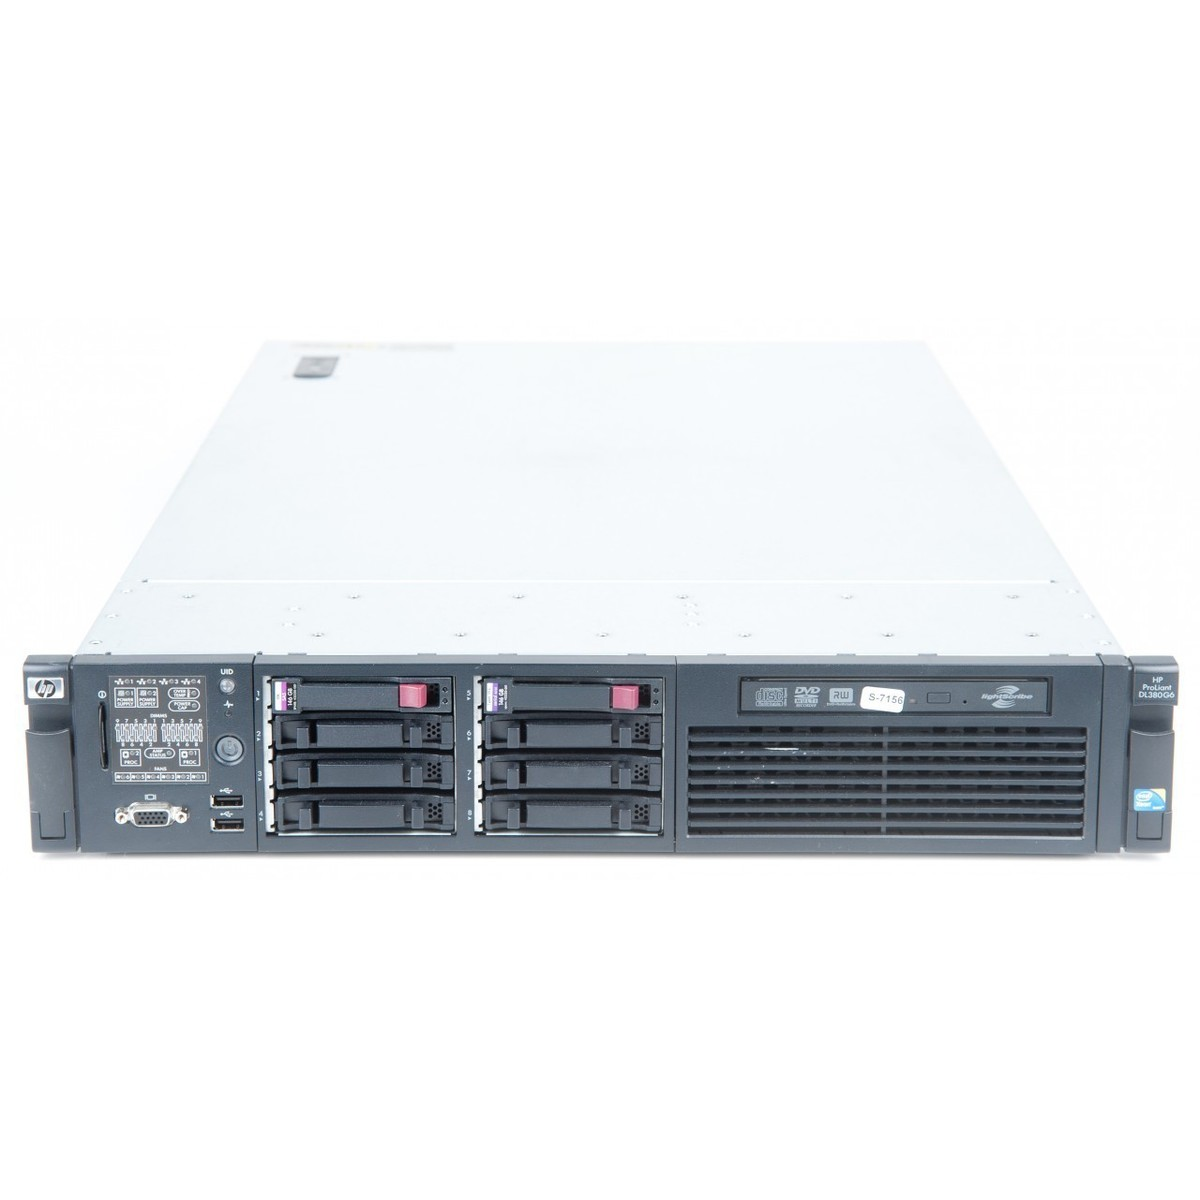 Server Second Hand Proliant Dl380 G6 2 X Xeon Quad Core X5570 2.93ghz 24gb Ddr3 2 X 146gb Sas Raid 2xpsu